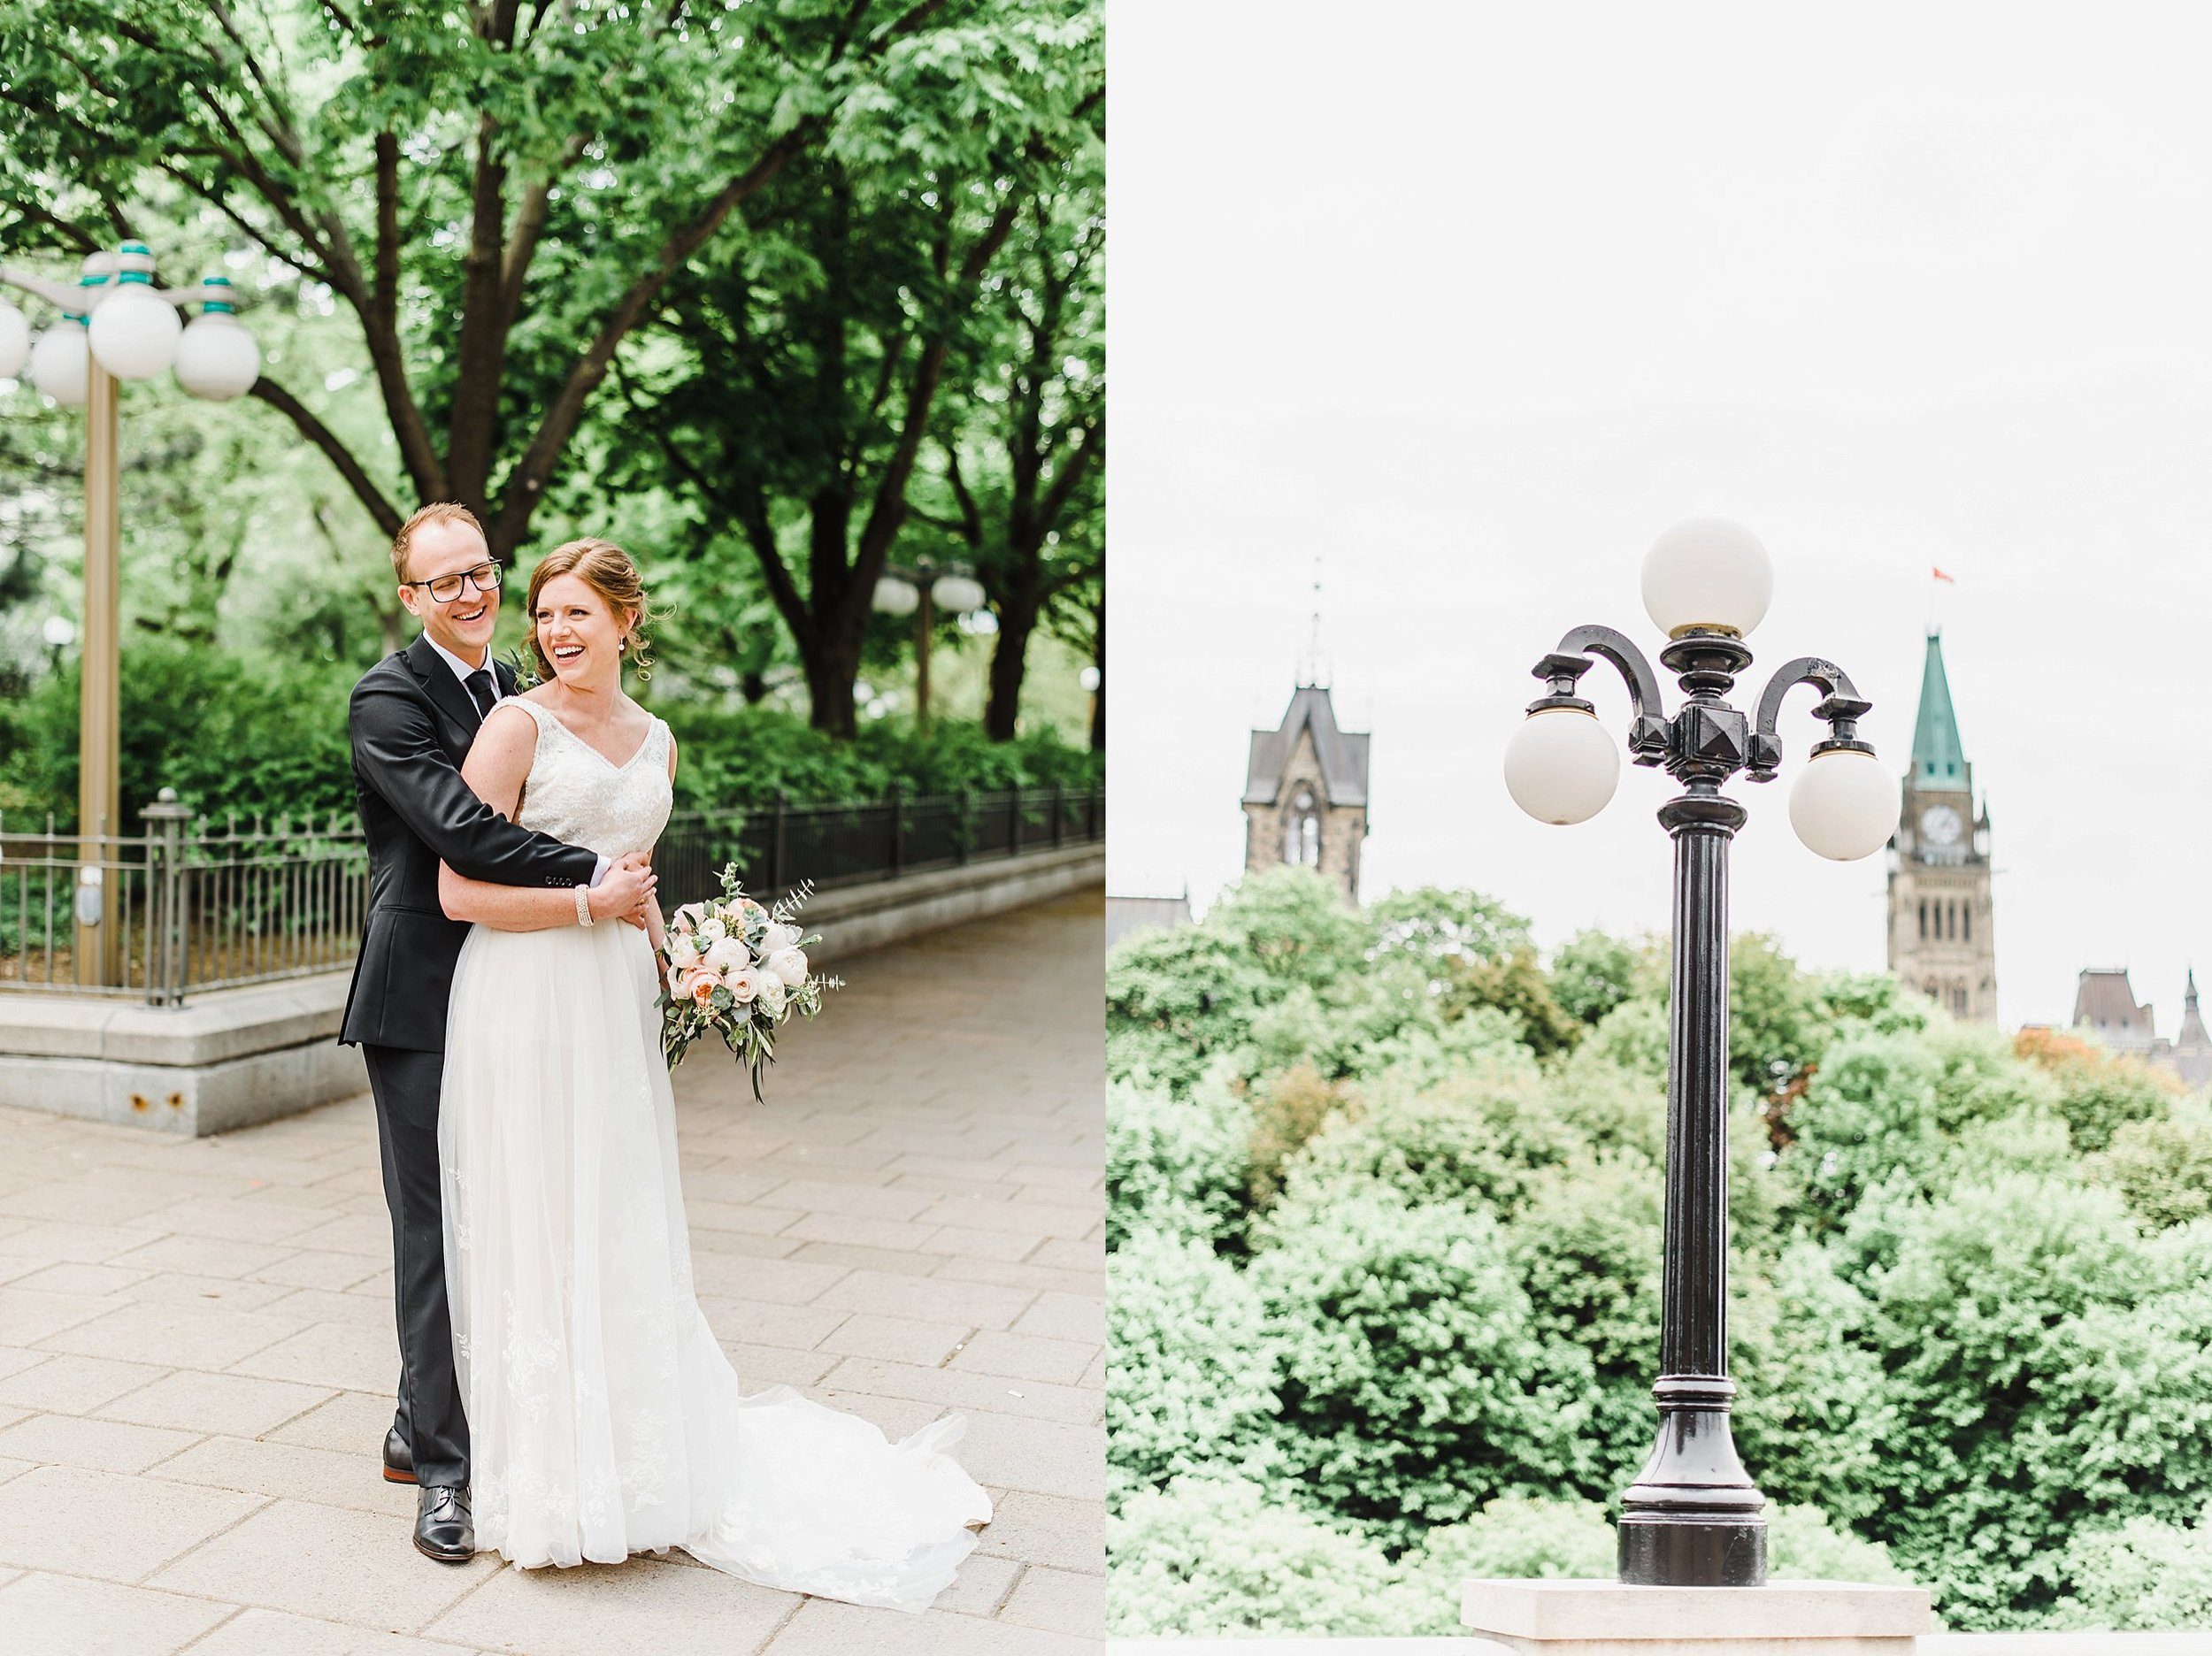 light airy indie fine art ottawa wedding photographer | Ali and Batoul Photography_0320.jpg